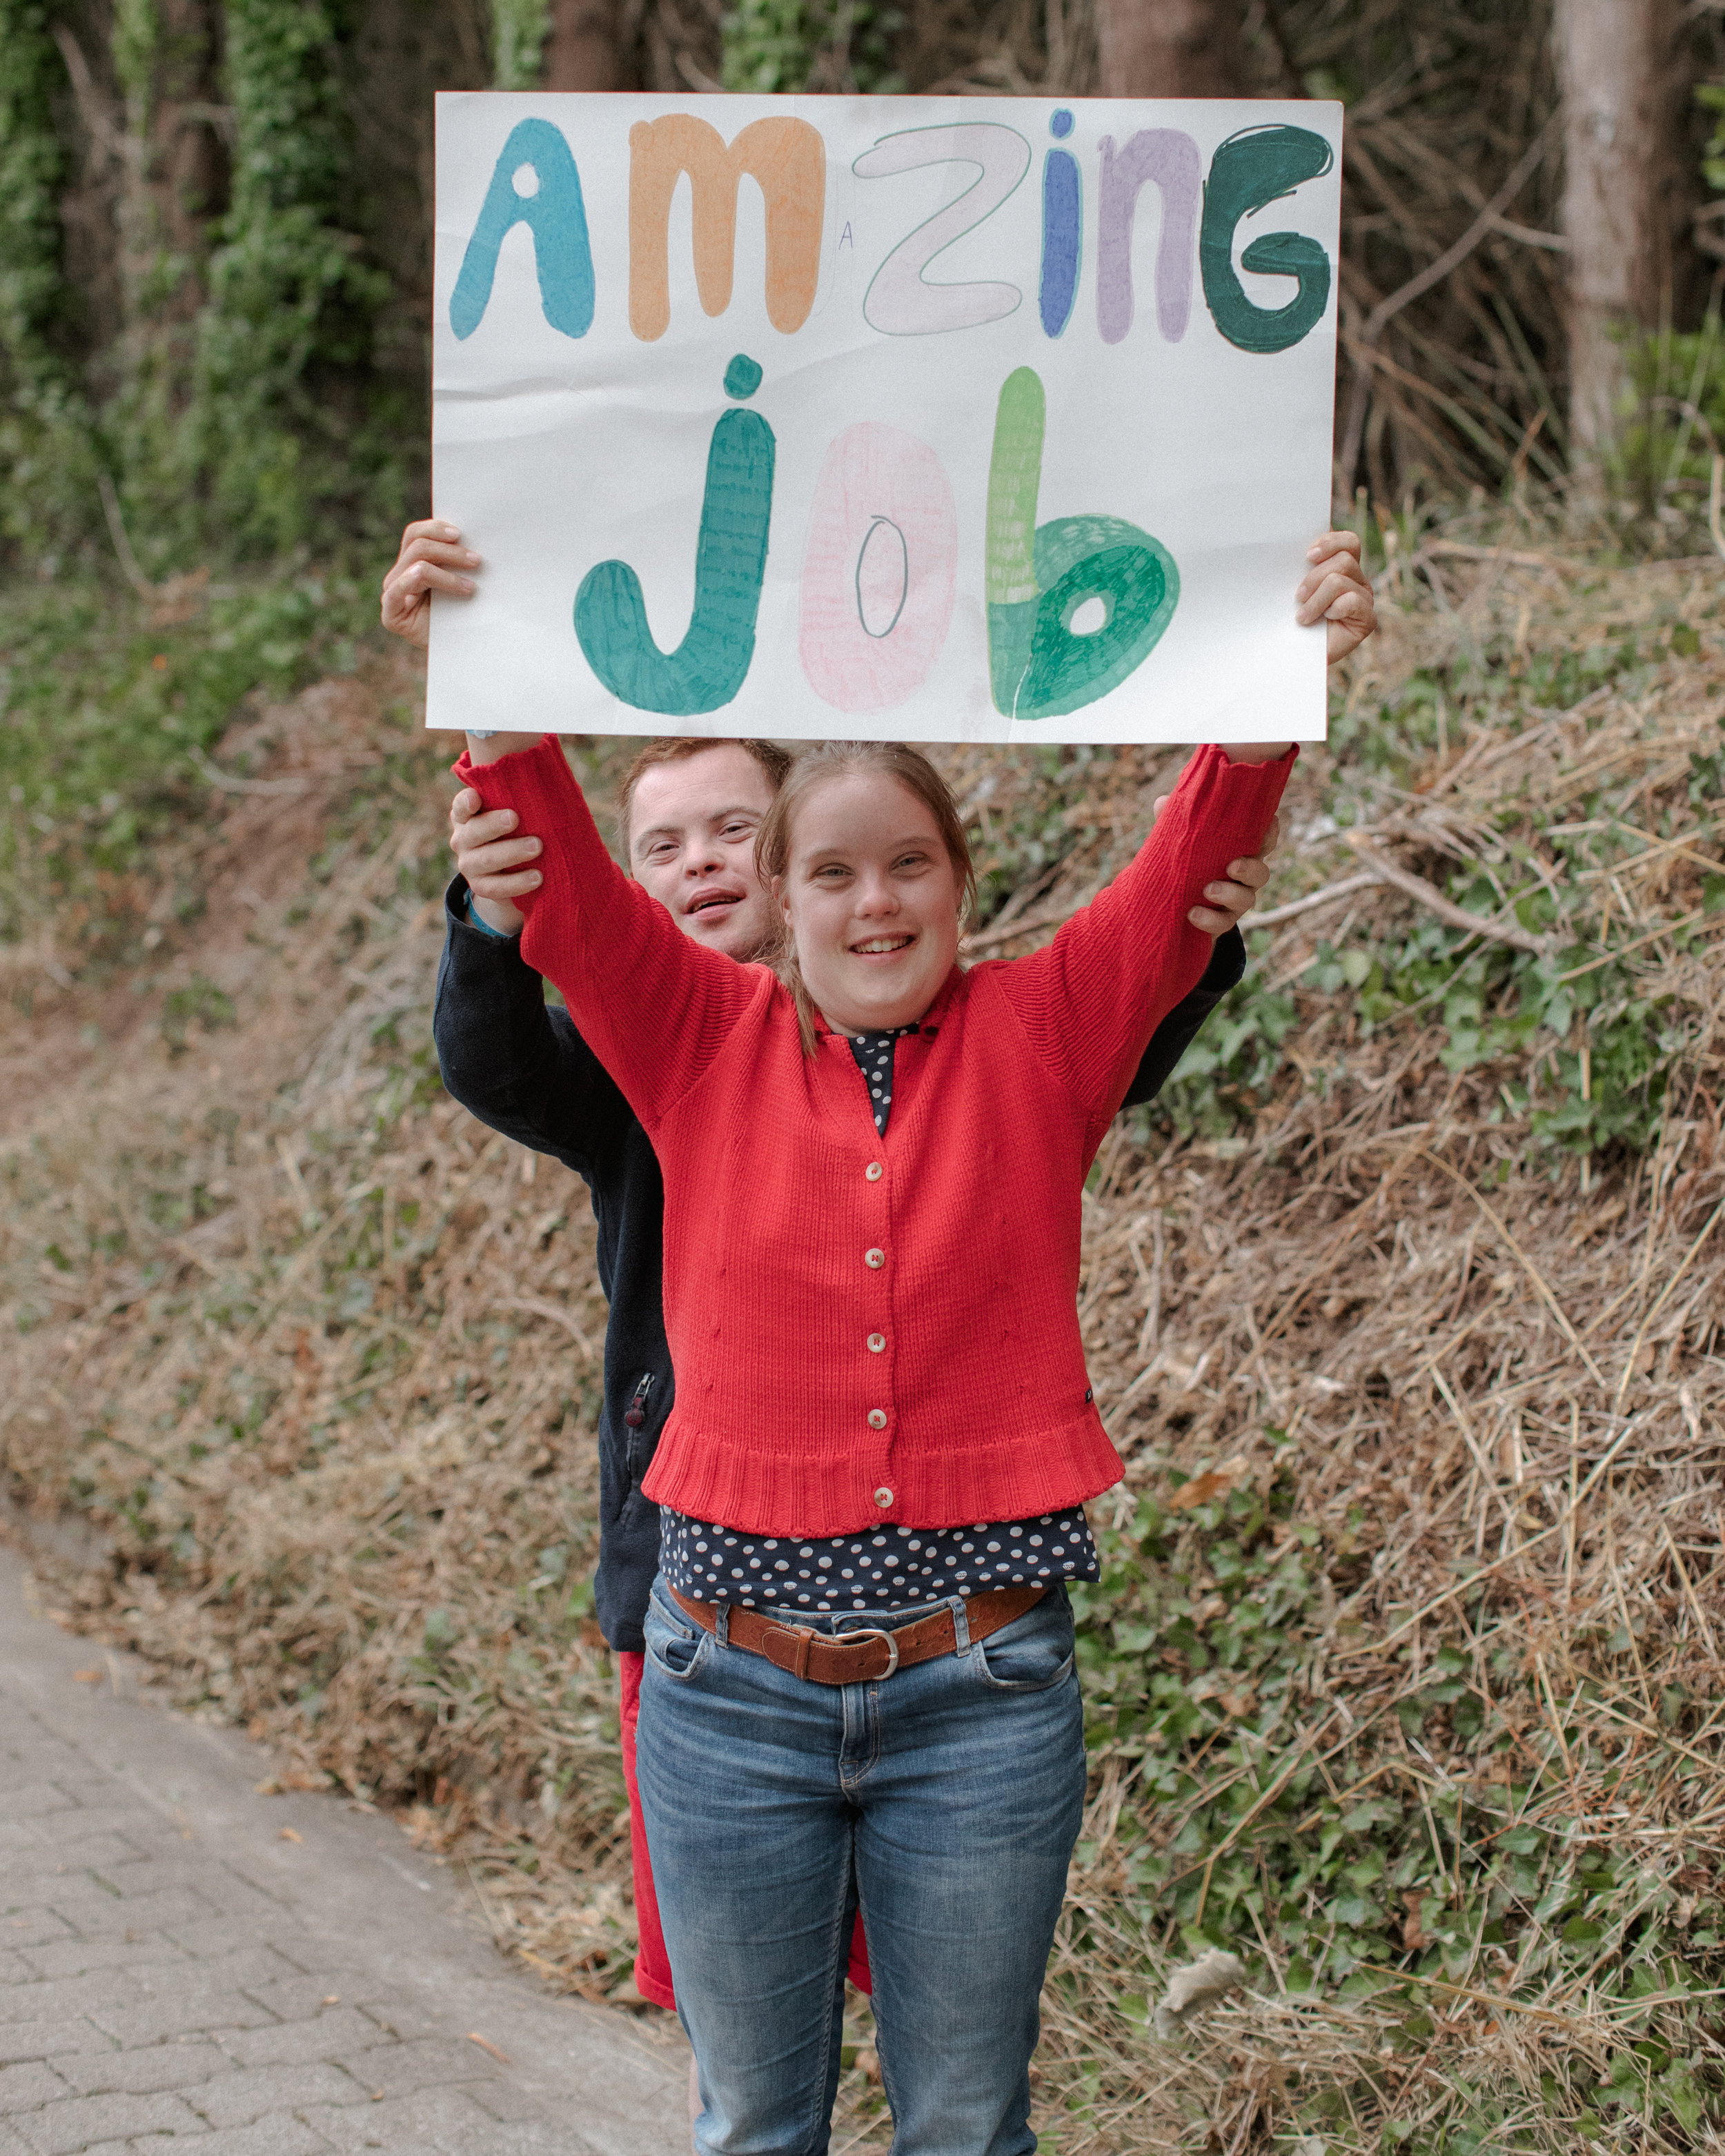 Job_sign_finishline_Angus_Sung_Photo.jpg